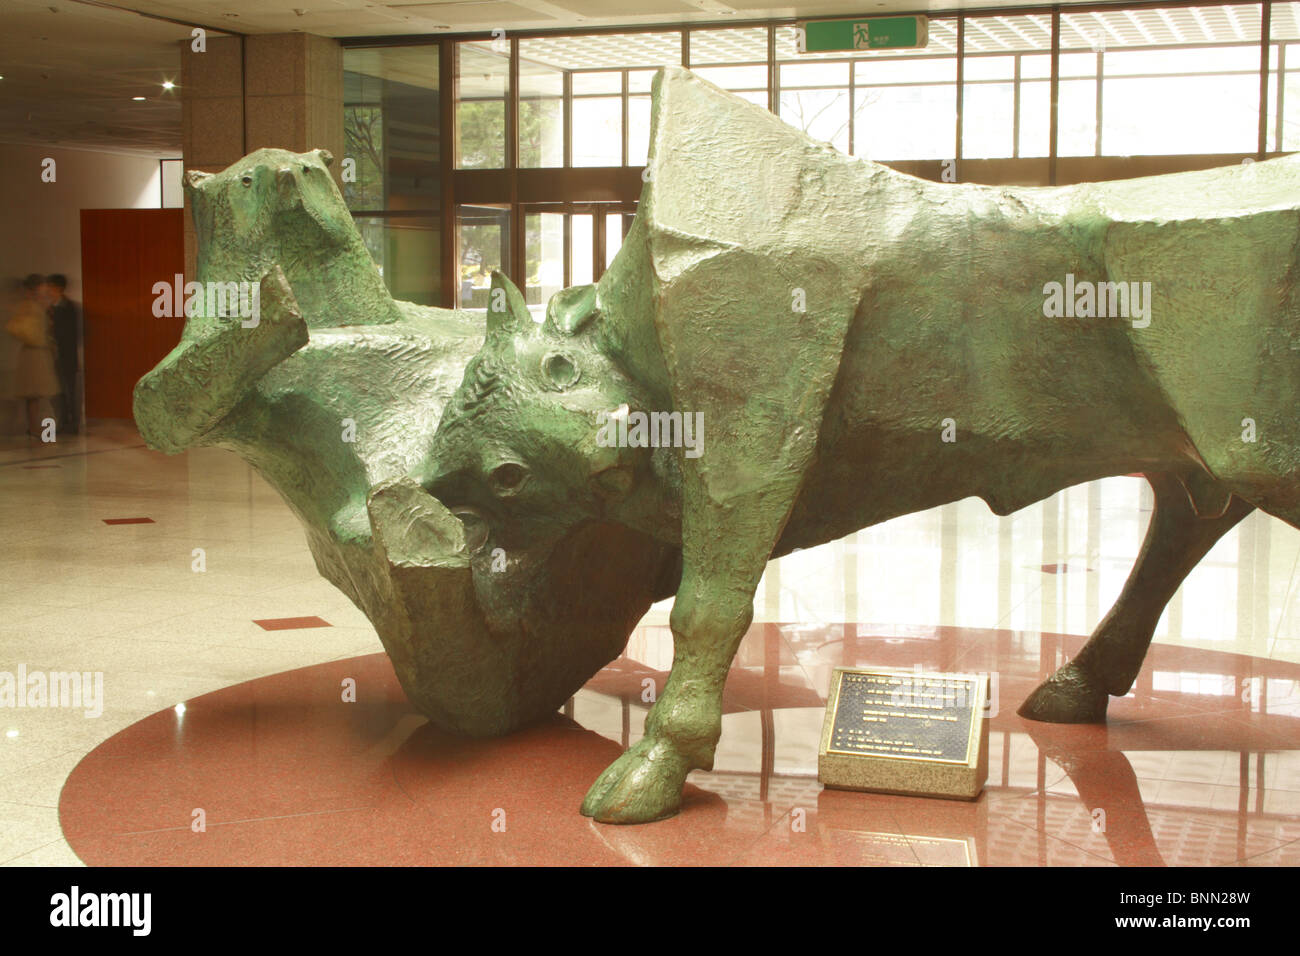 Seoul Stock Exchange Bear and Bull sculpture Stock Photo